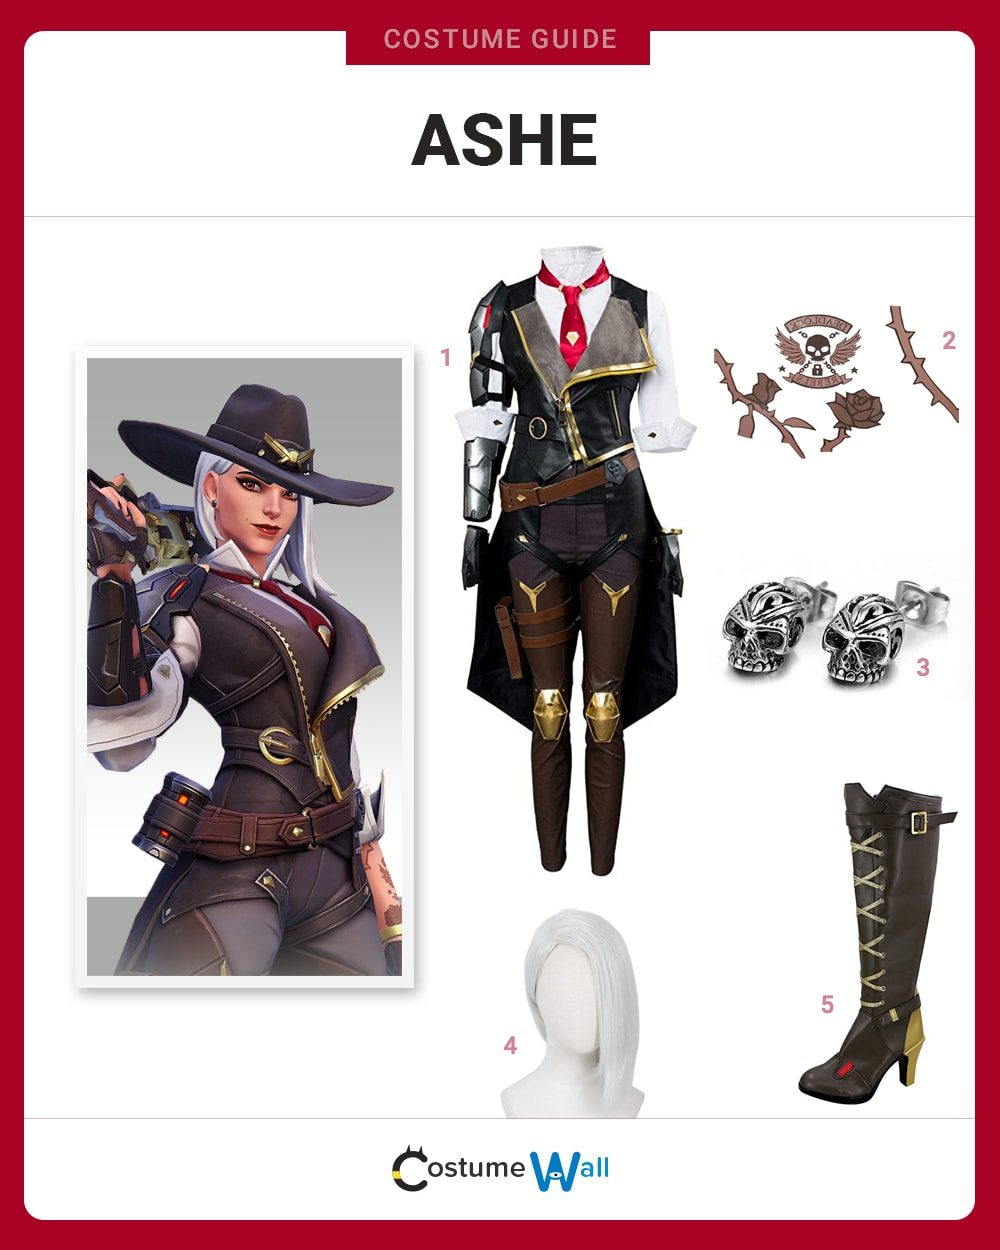 Ashe Costume Guide